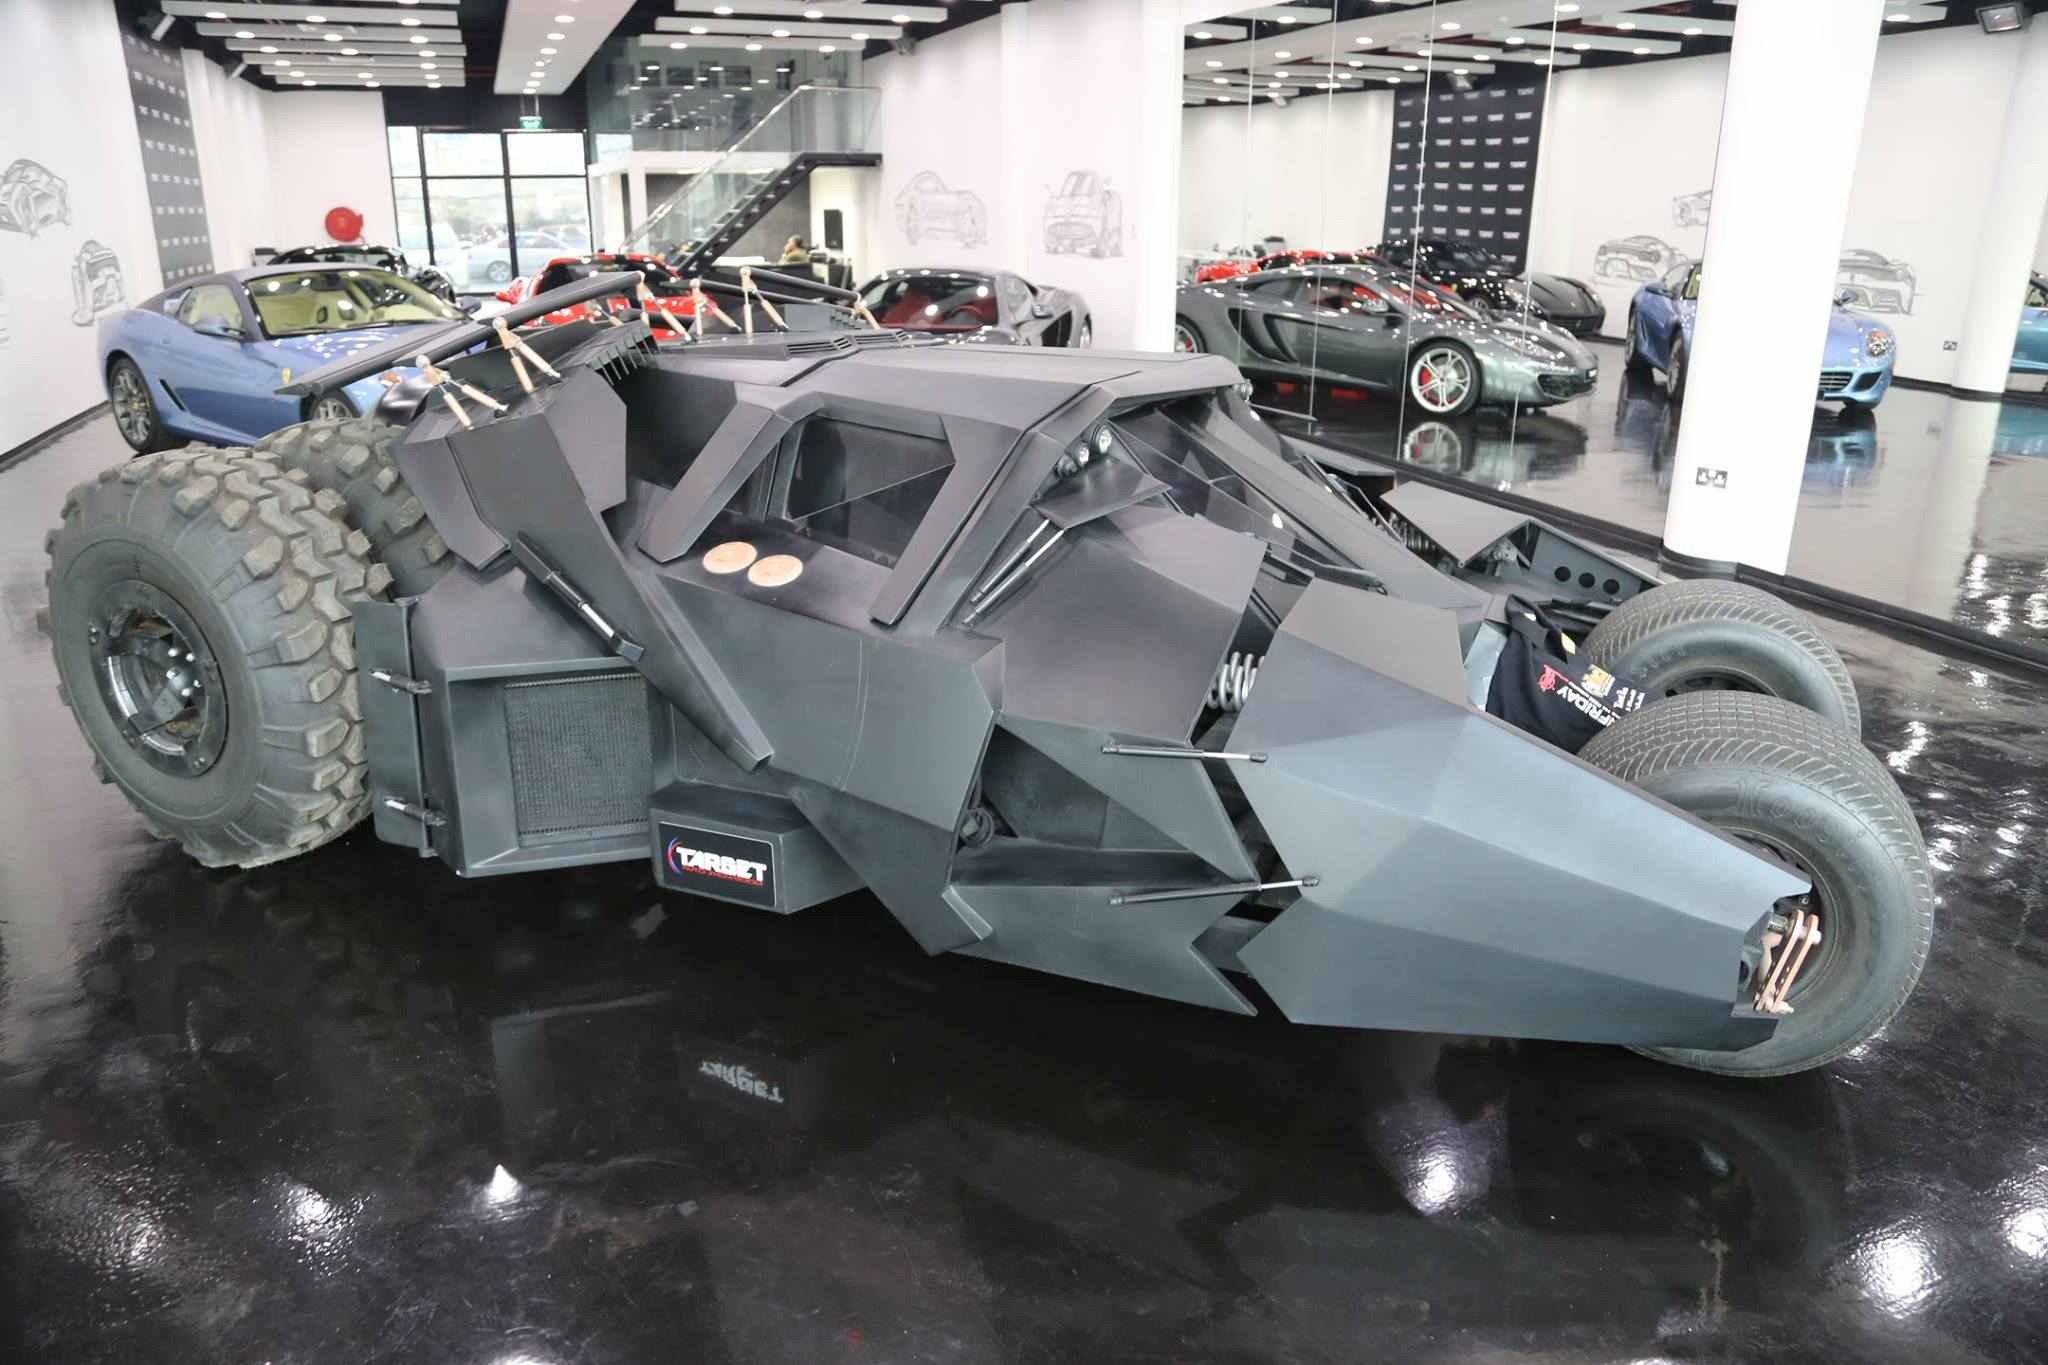 tumbler-batmobile-and-tron-bike-for-sale-in-dubai-luxury-dealership-video-photo-gallery_3